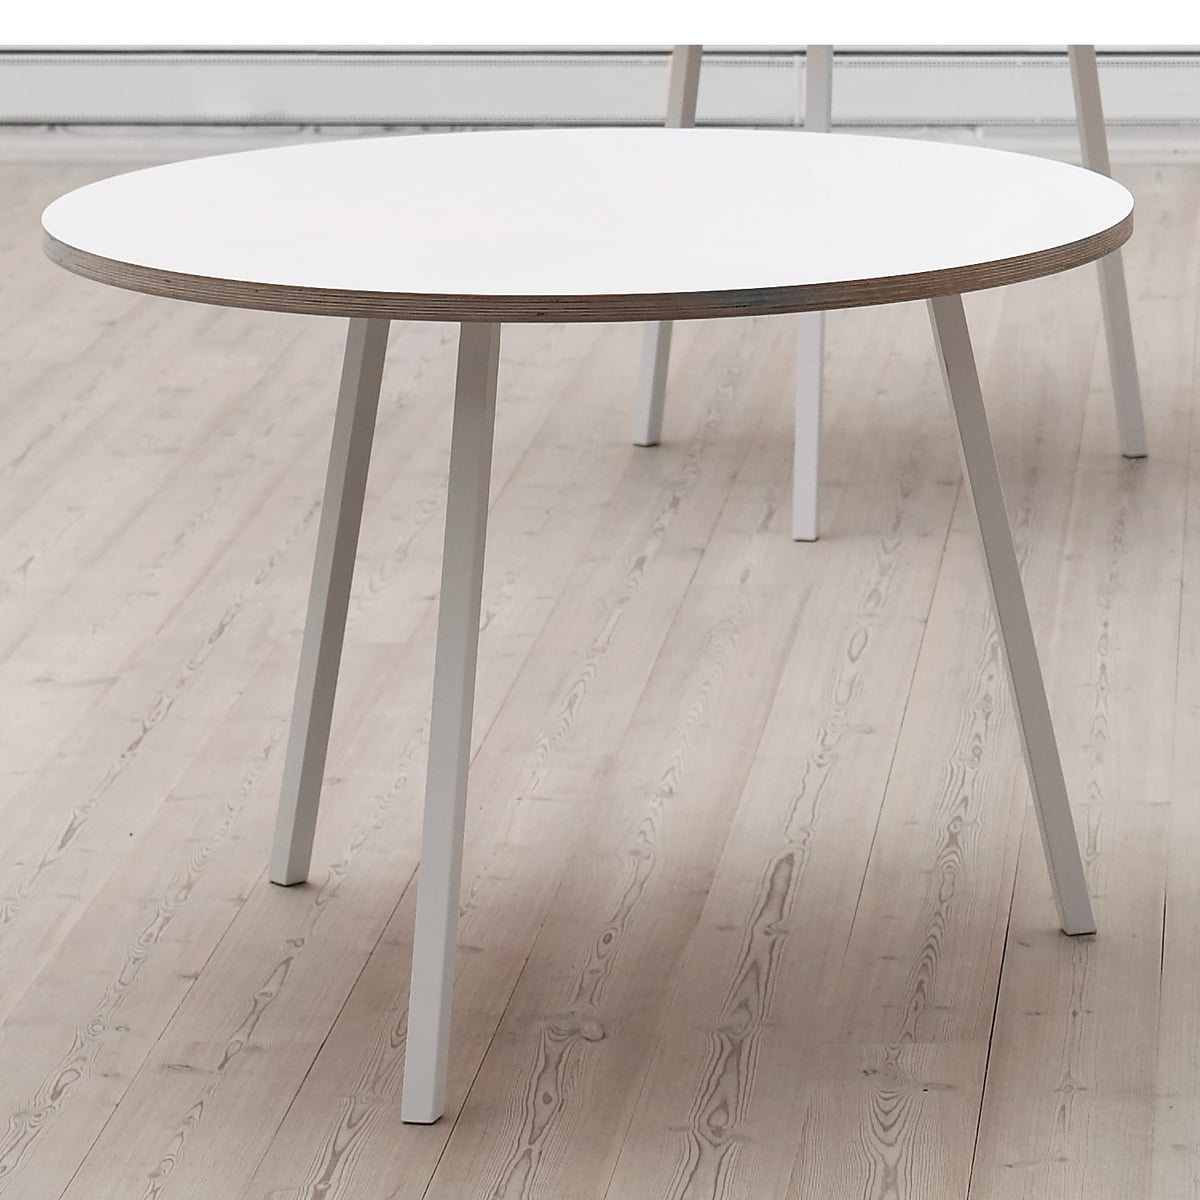 The Round Loop Stand Table By Hay In Shop